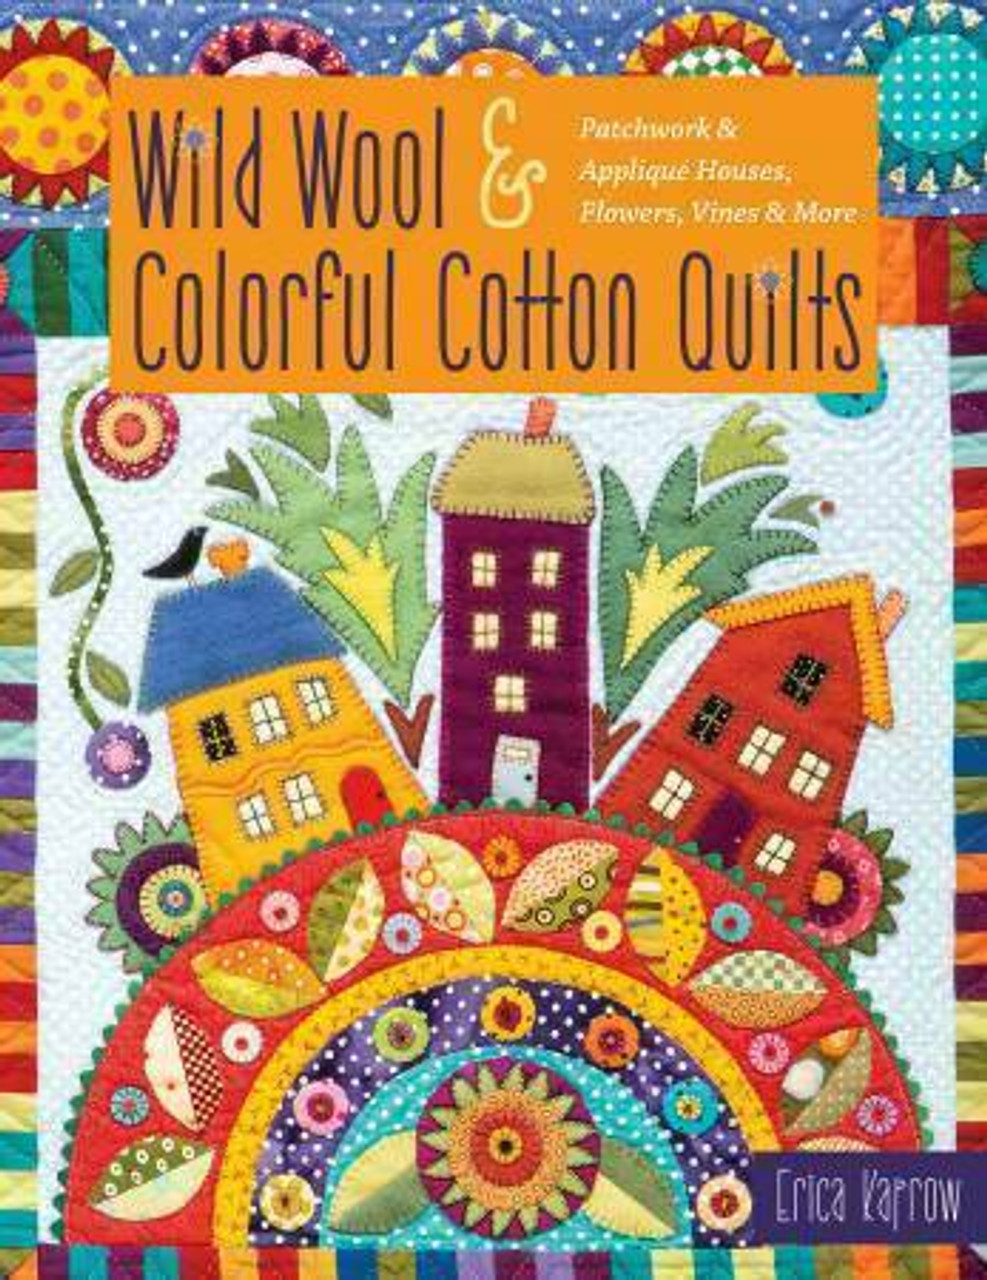 Wild Wool & Colourful Cotton Quilts